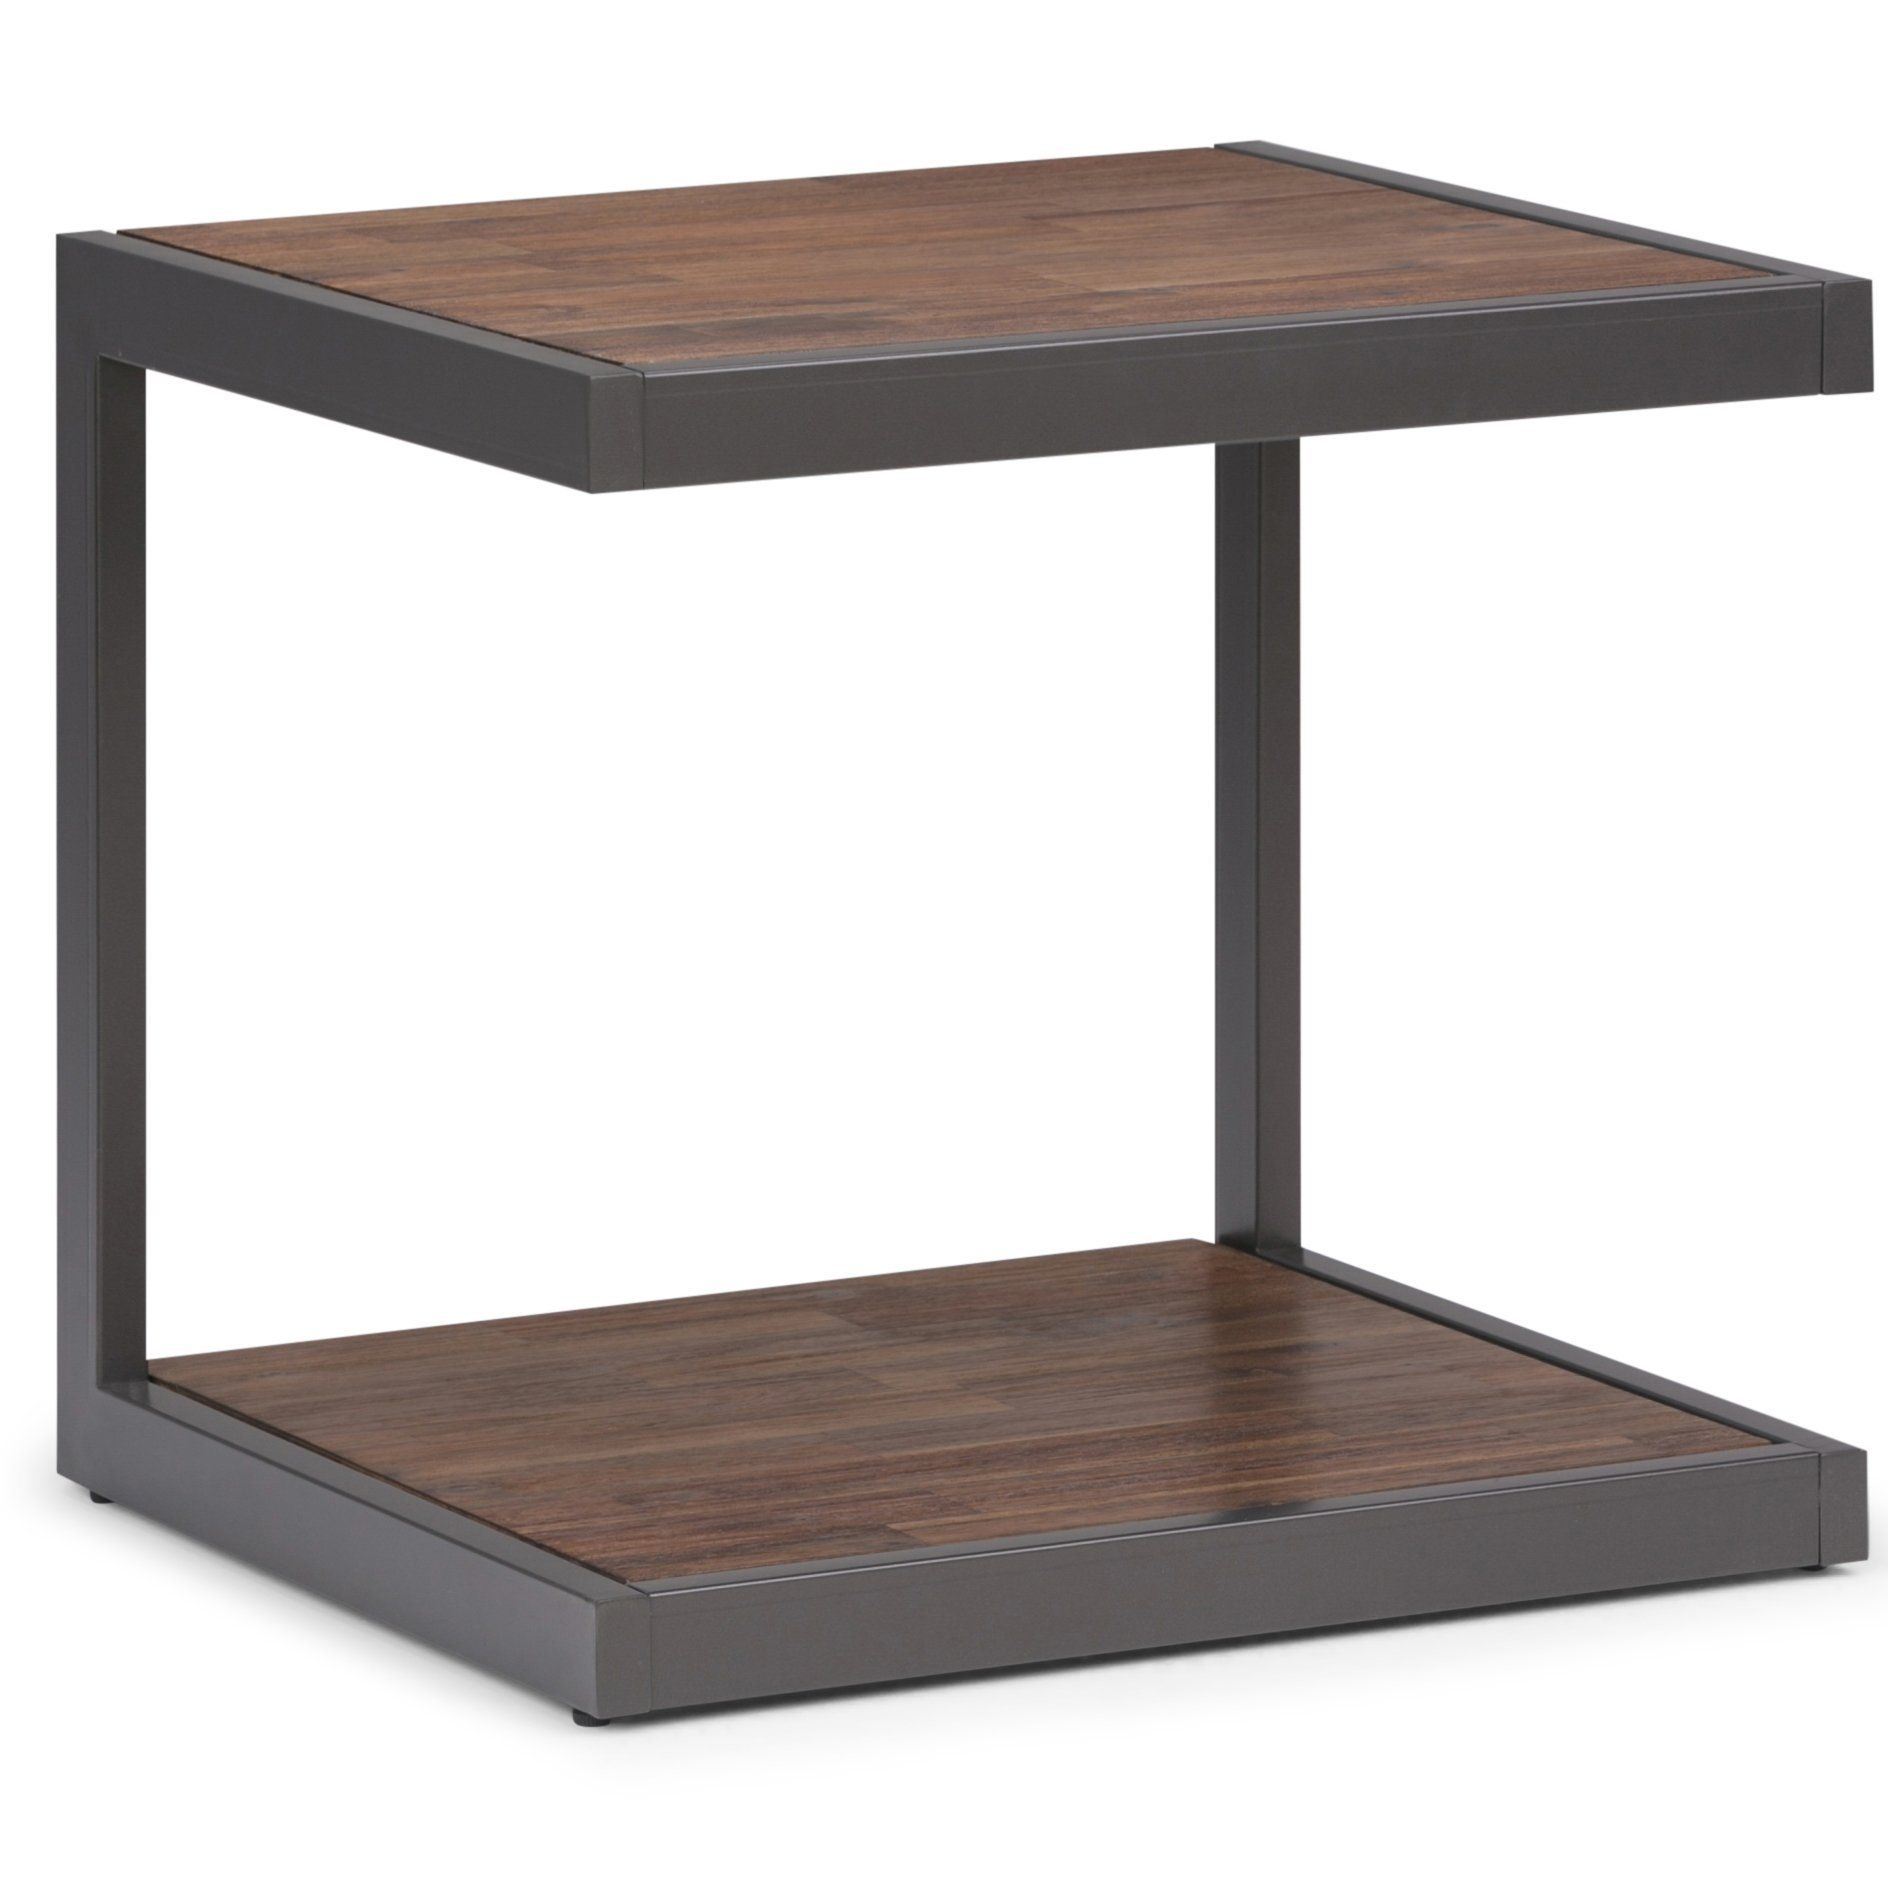 Mygift 24inch Modern Black Metal Square Tray Side Table Read More Reviews Of The Product By Visiting The Link Square Tray Living Room Furniture Side Table